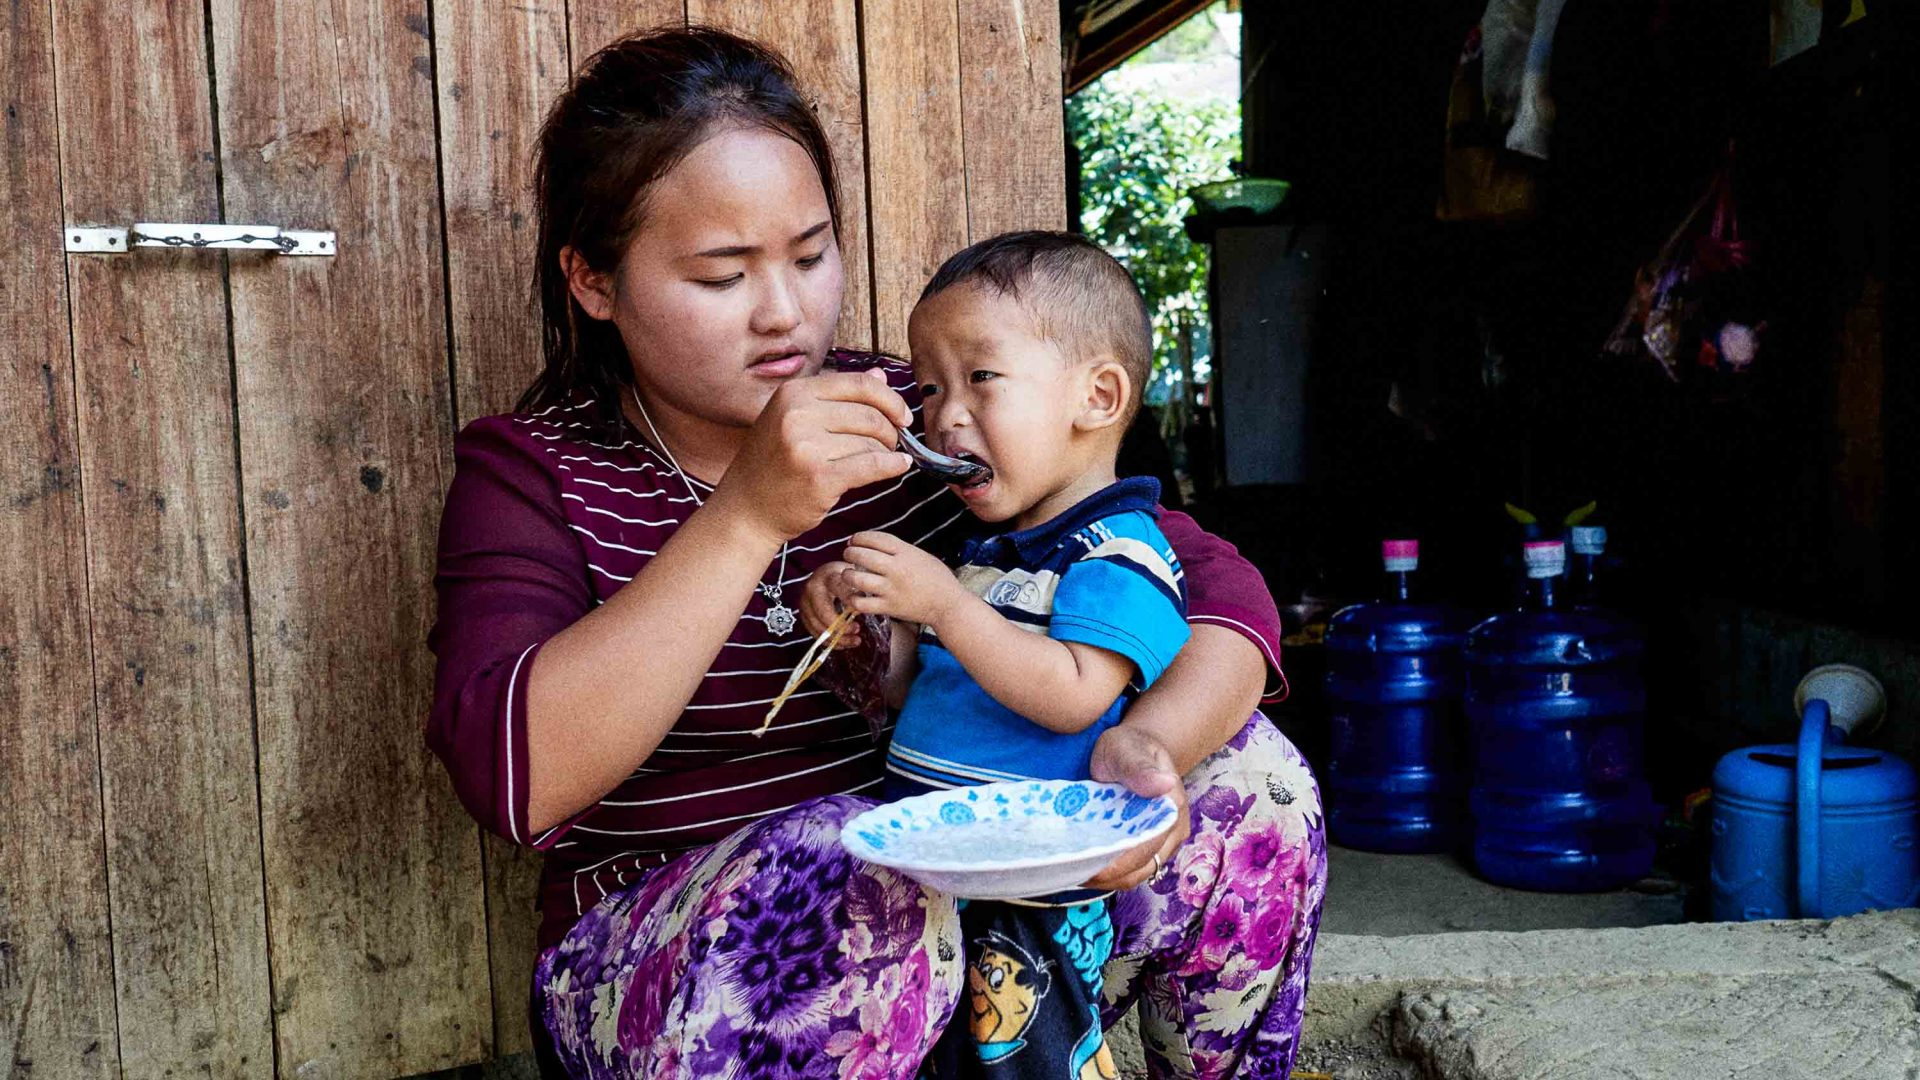 A mother feeds her child in Laos.